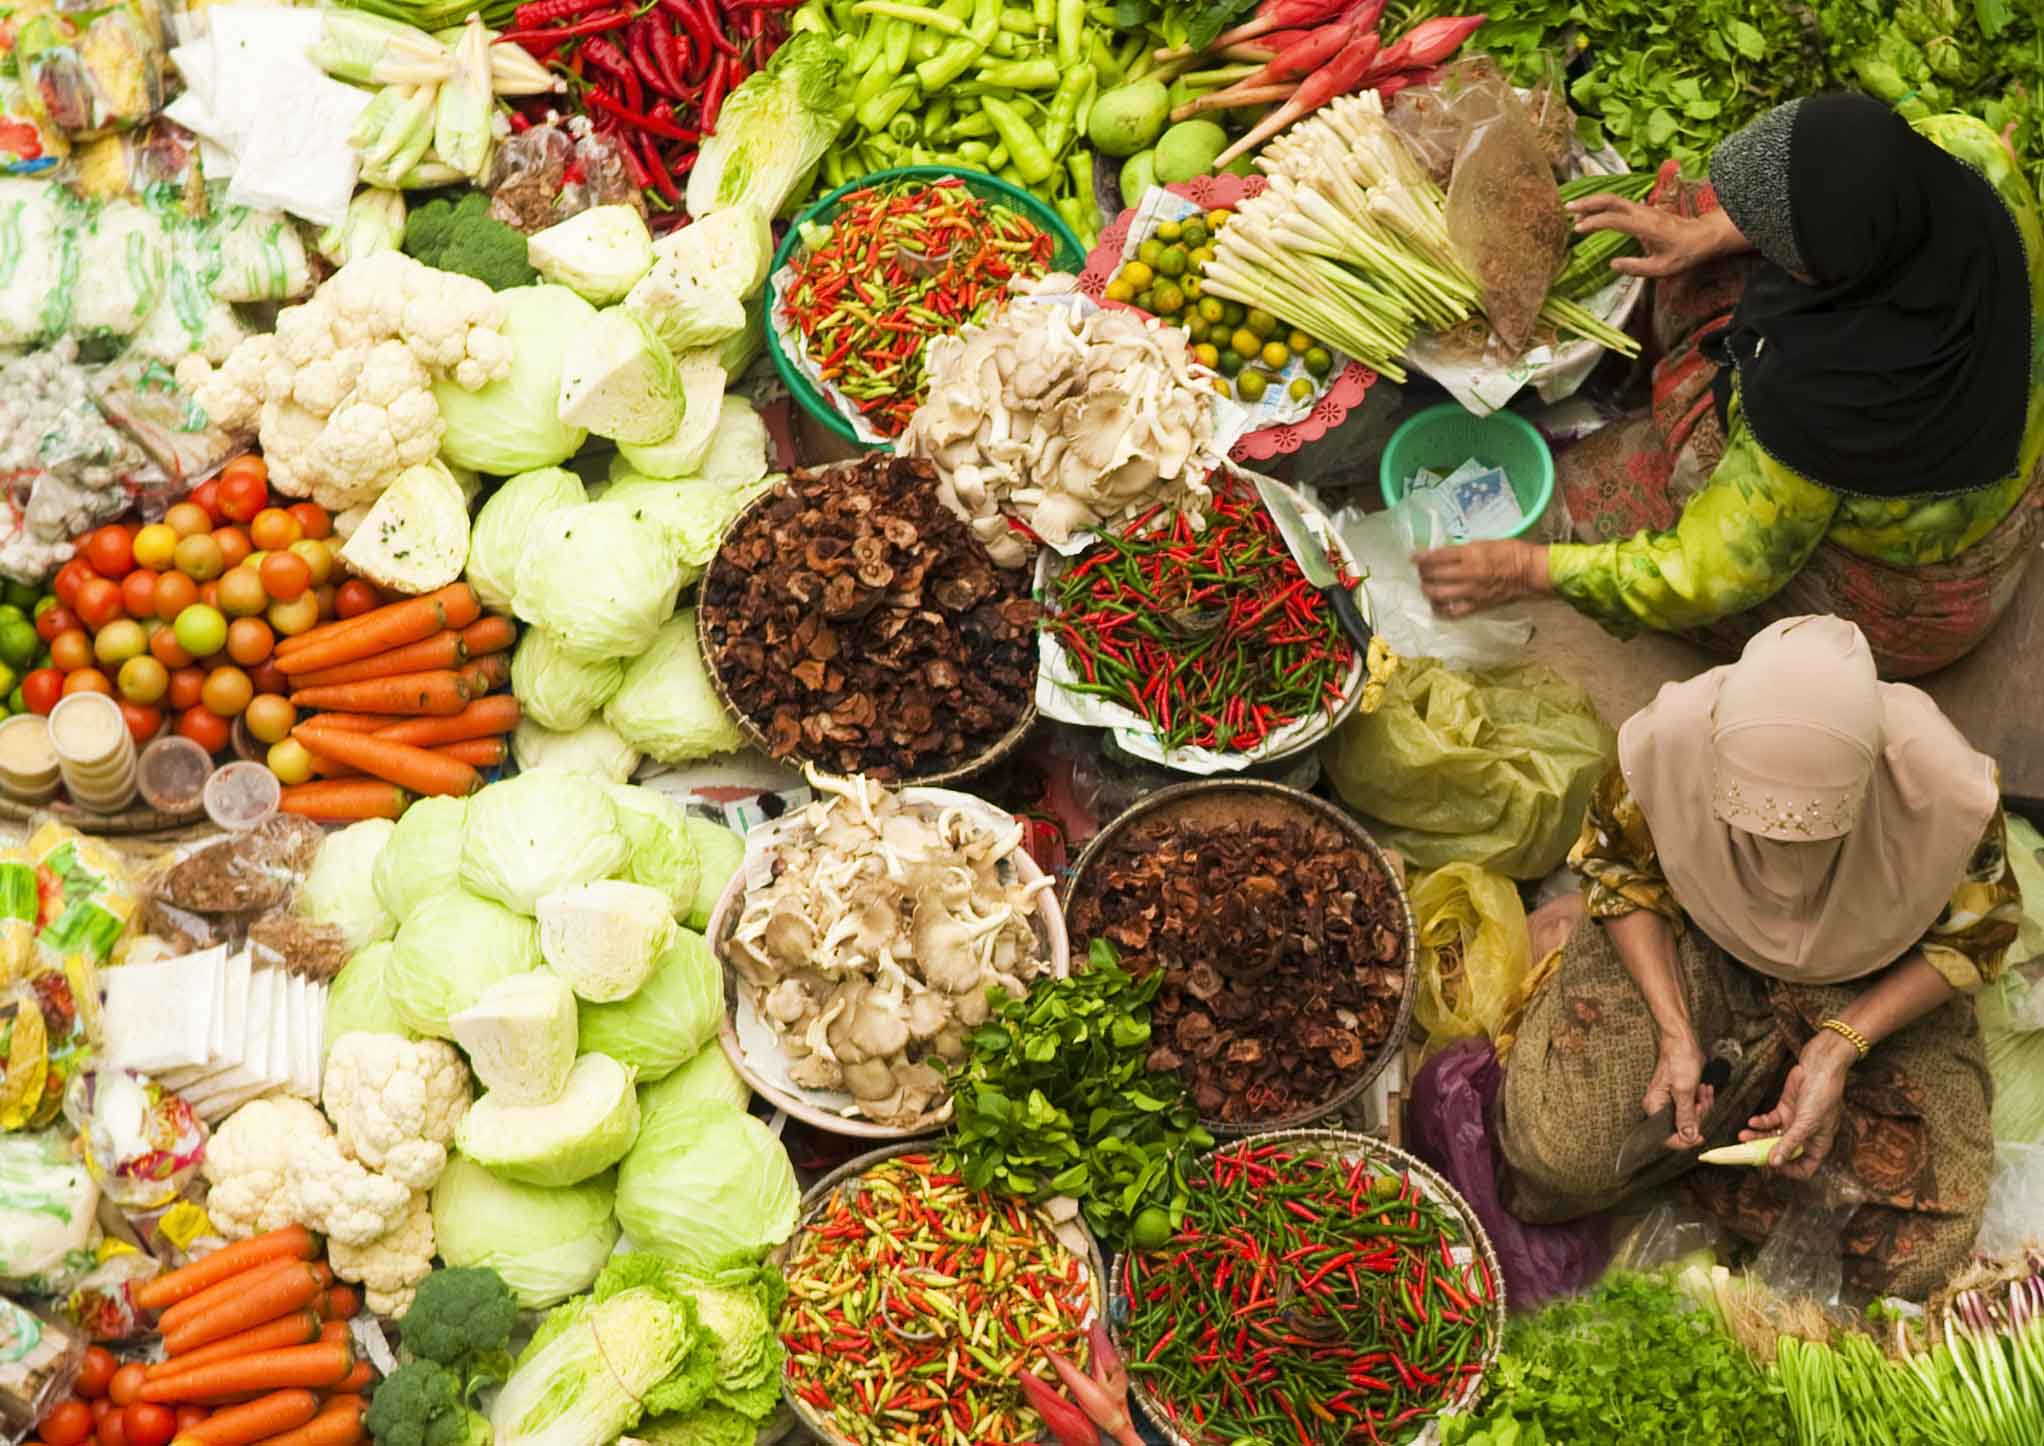 10 EXTRAORDINARY (AND GENUINE) MARKETS TO VISIT IN SOUTHEAST ASIA